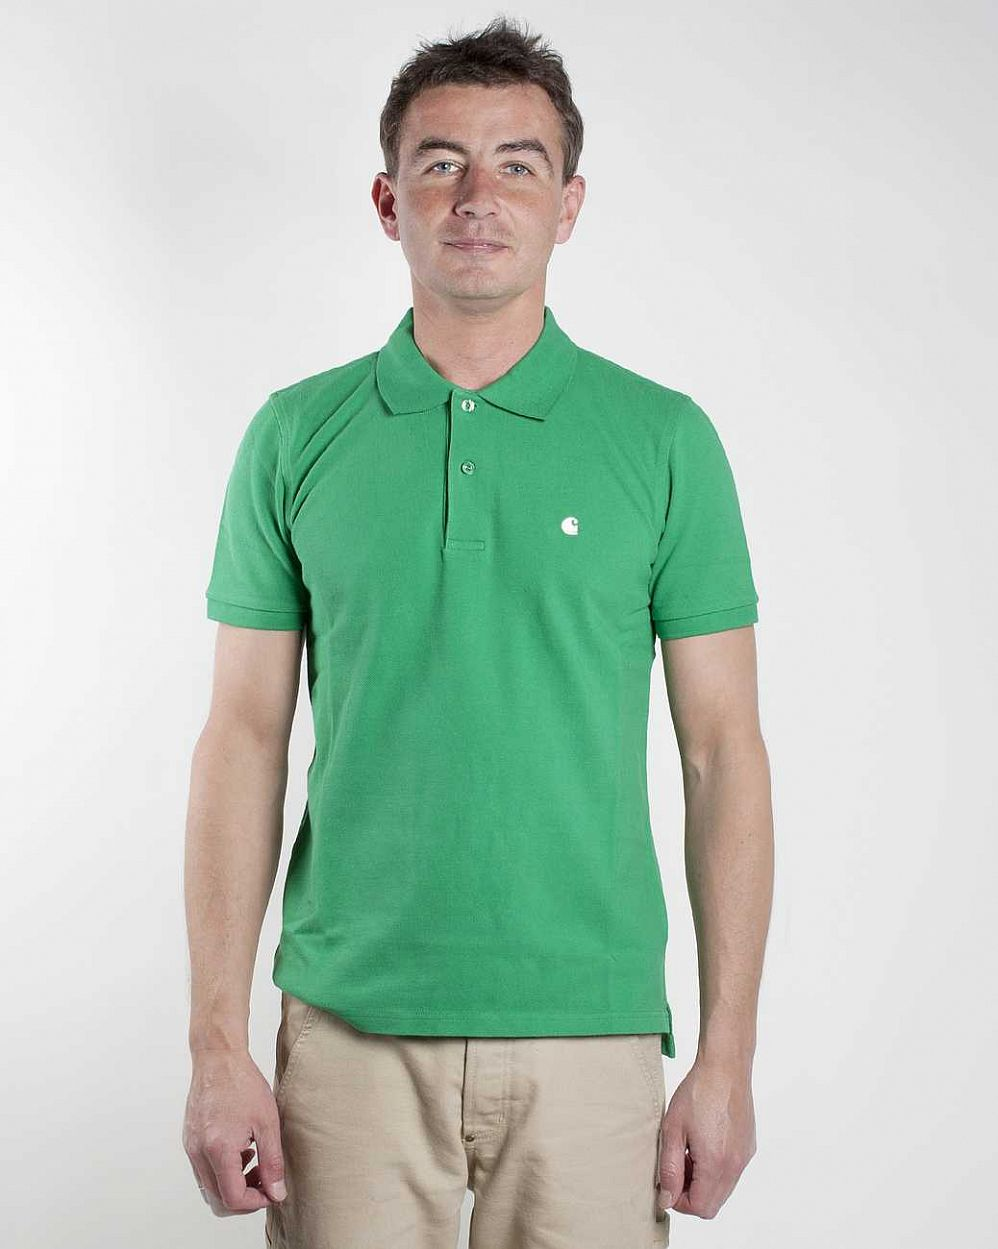 купить Поло Carhartt S/S Slim Fit Polo Shamrock white в Москве